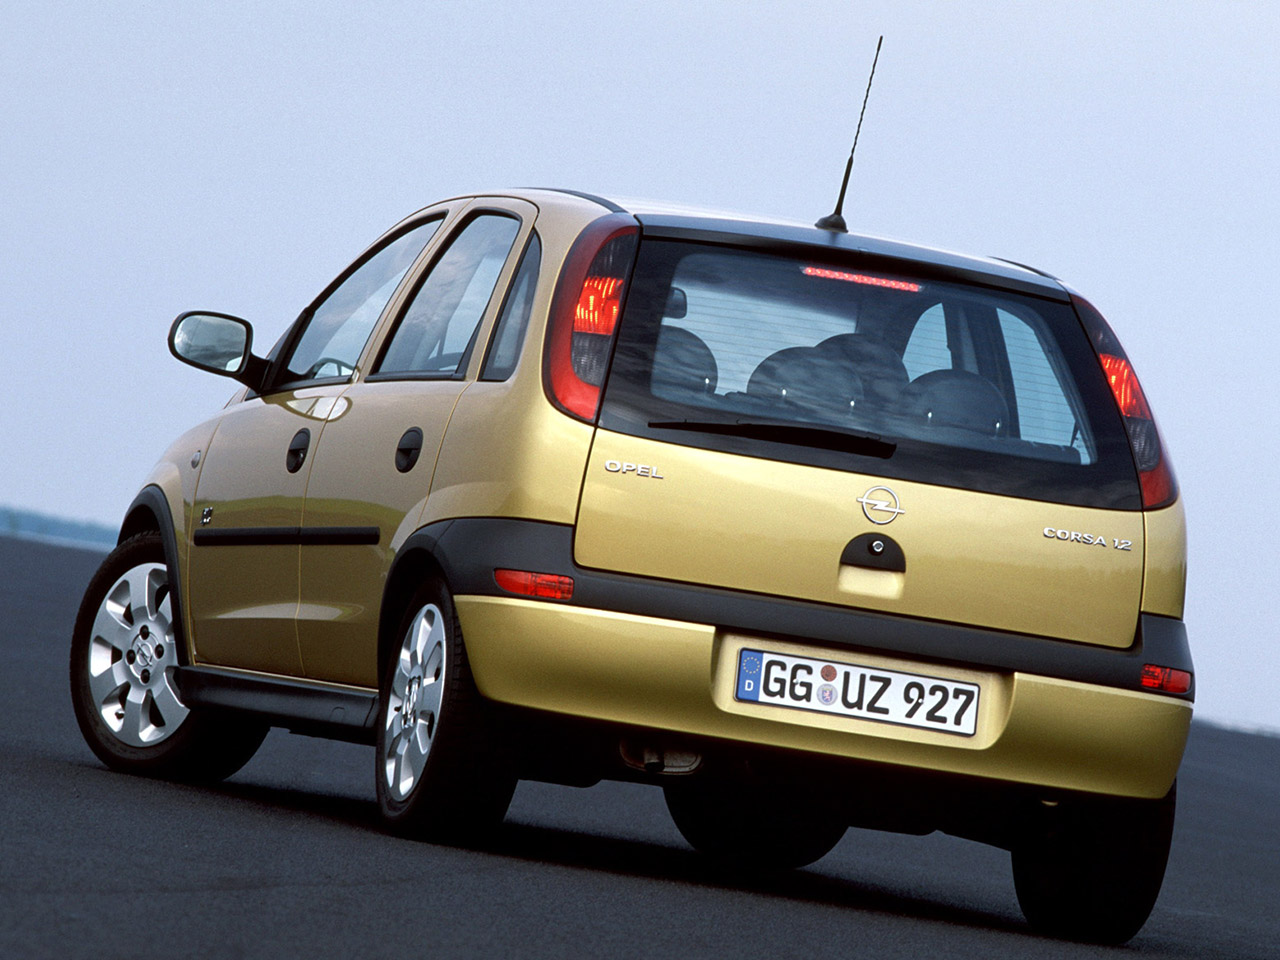 opel corsa c 5 door 2000 2003 opel corsa c 5 door 2000 2003 photo 02 car in pictures car. Black Bedroom Furniture Sets. Home Design Ideas